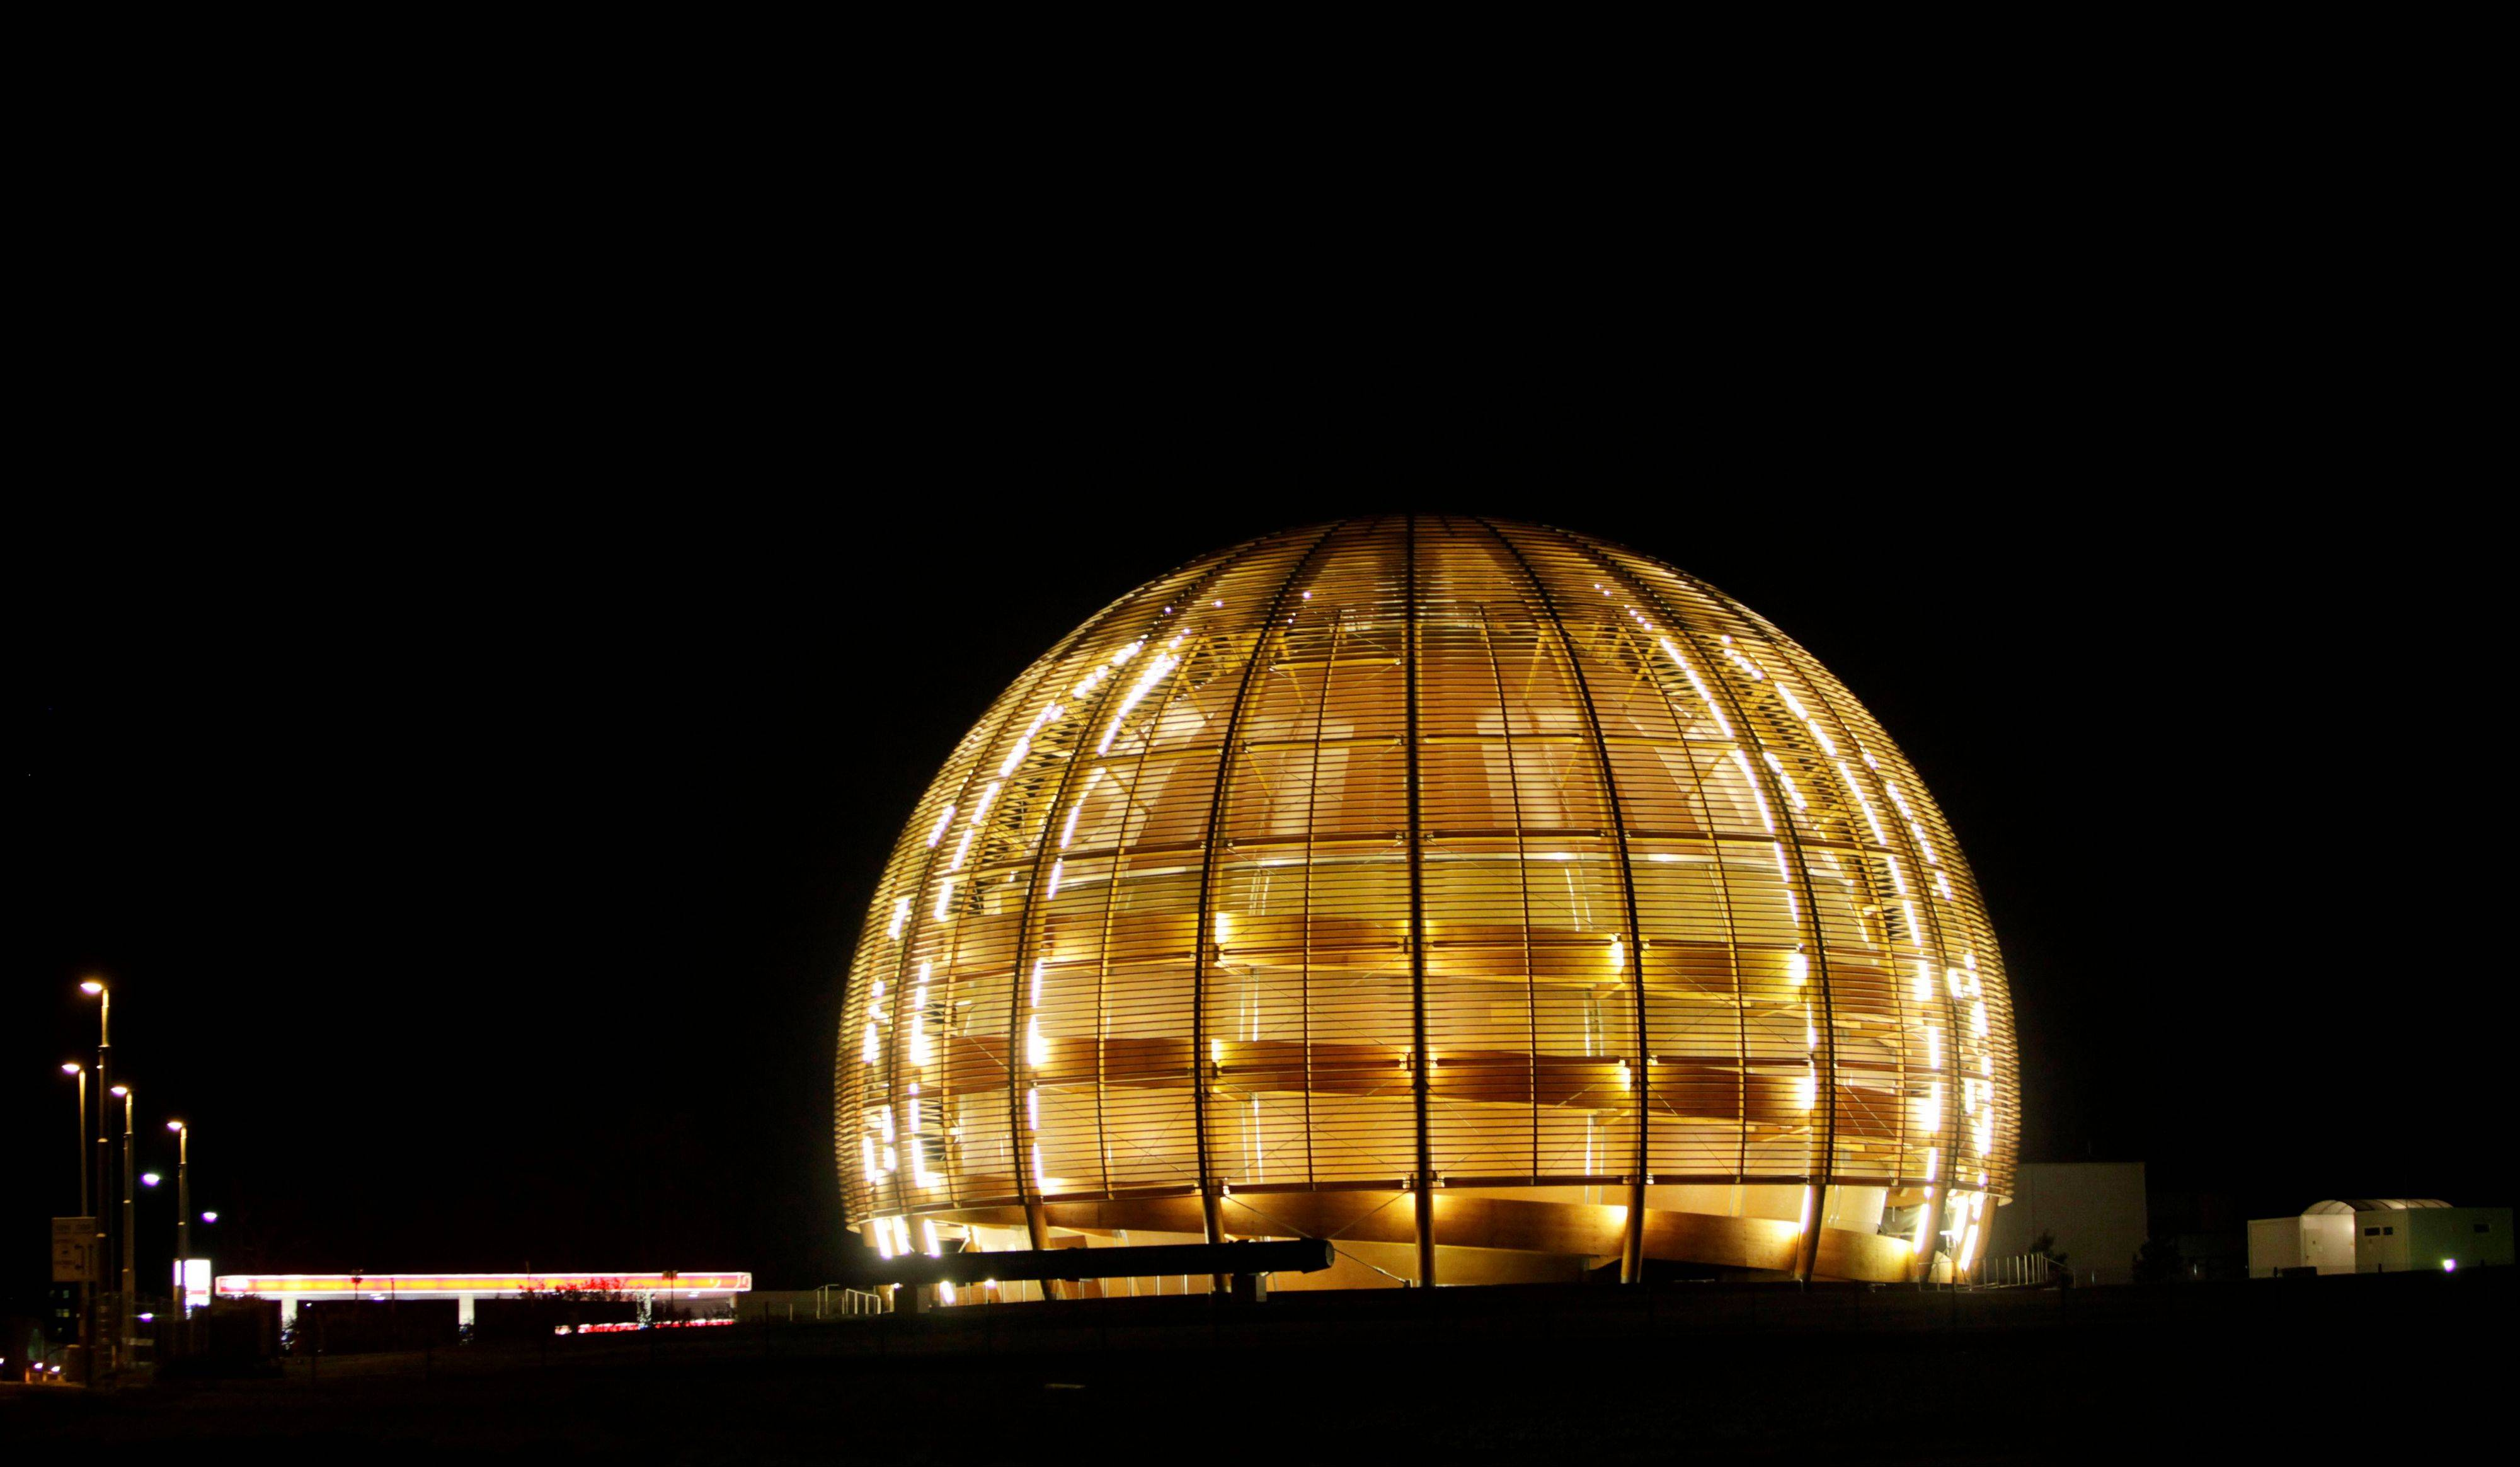 Associated Press/March 30, 2010 The globe of the European Organization for Nuclear Research, CERN, is illuminated outside Geneva, Switzerland.